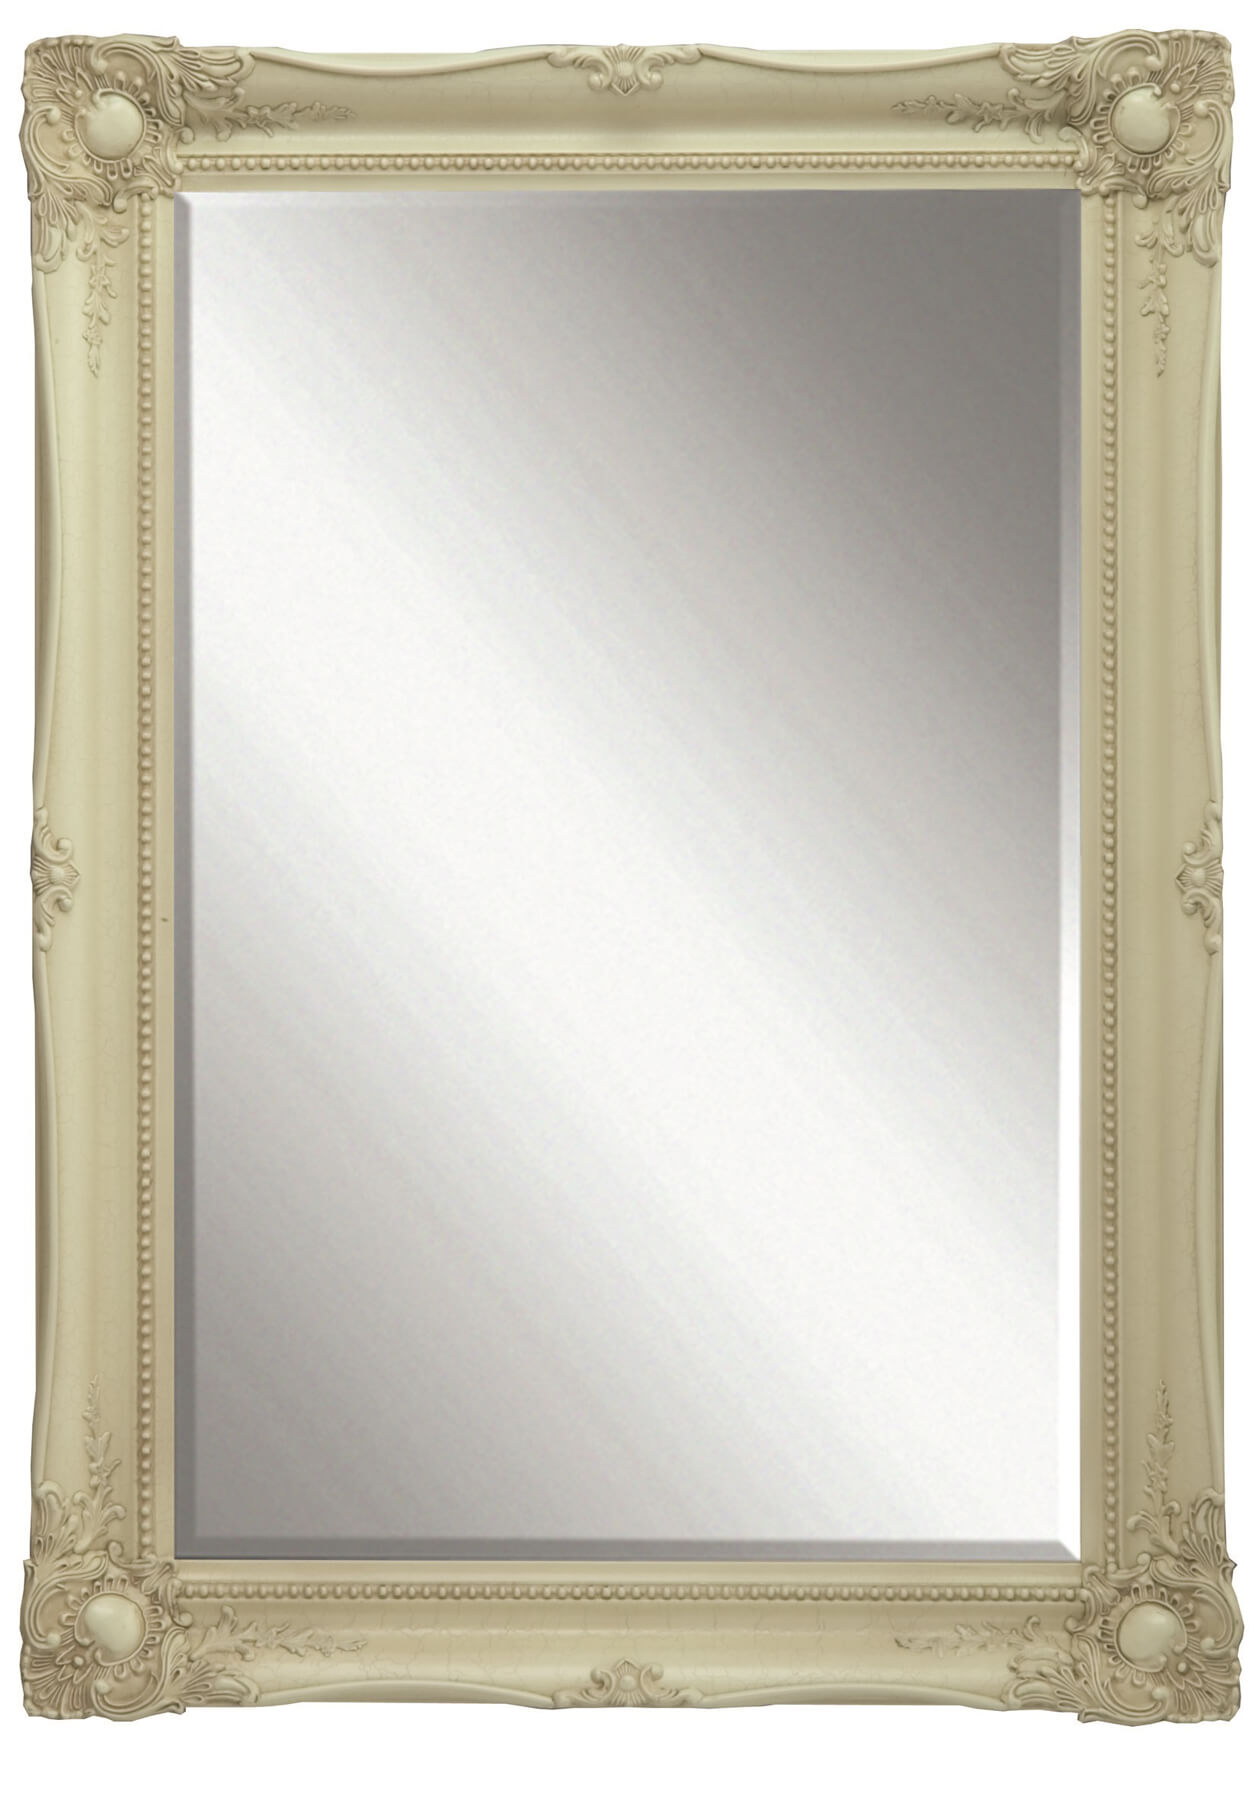 Heritage Balham 660 x 910mm Cream Wooden Framed Mirror